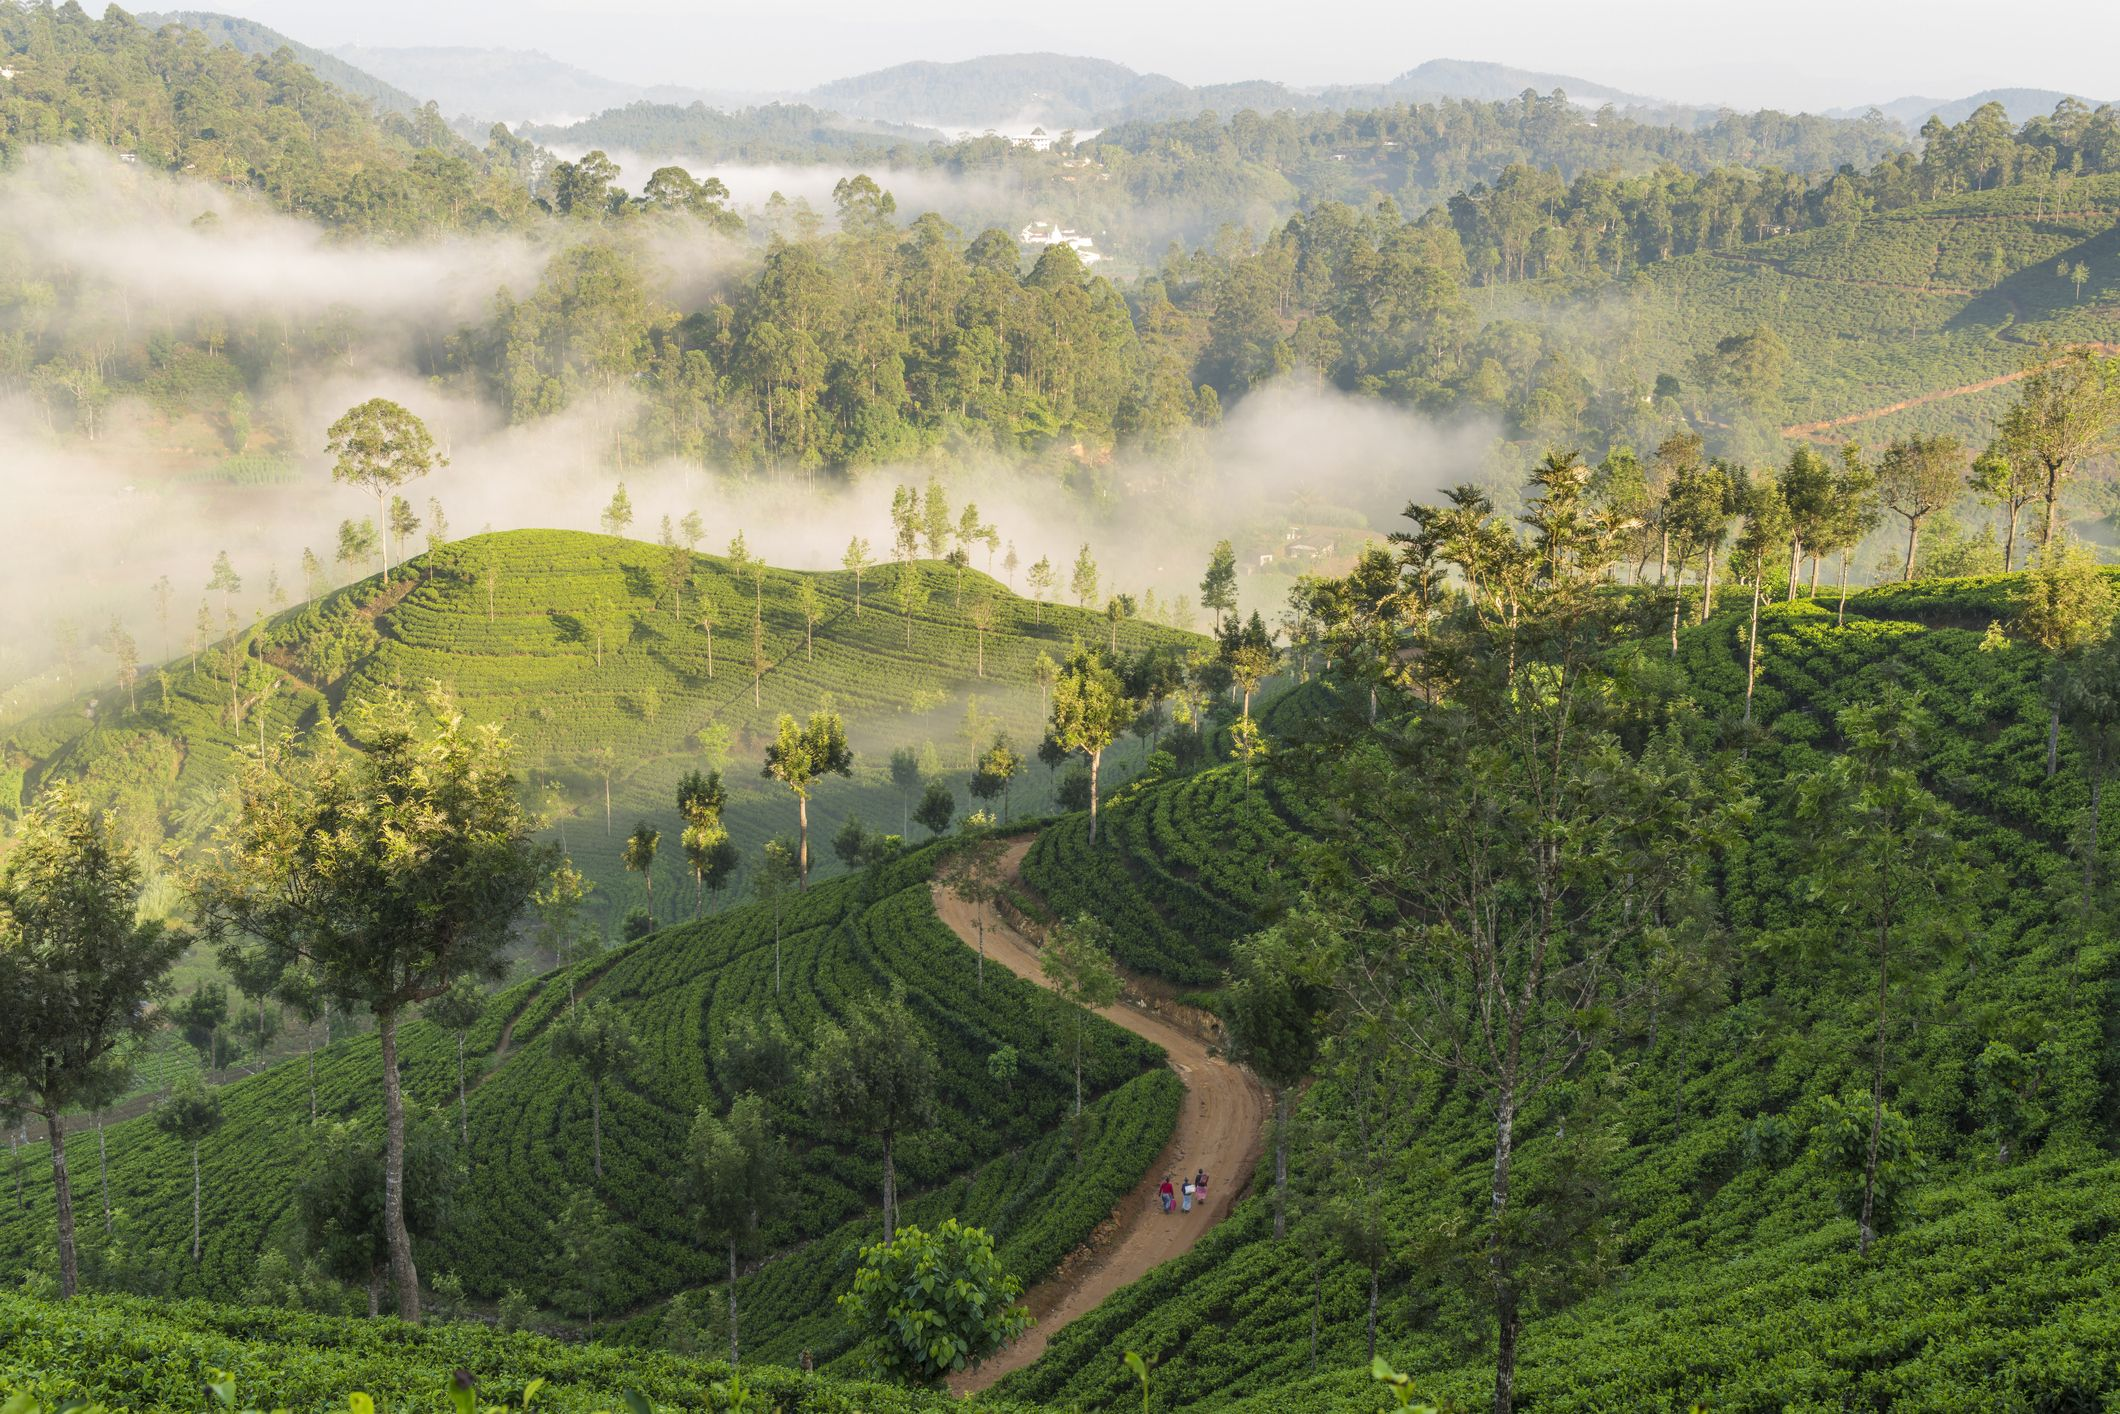 Sri Lanka, Southern Highlands, Hapatule, Morning mist over tea plantation